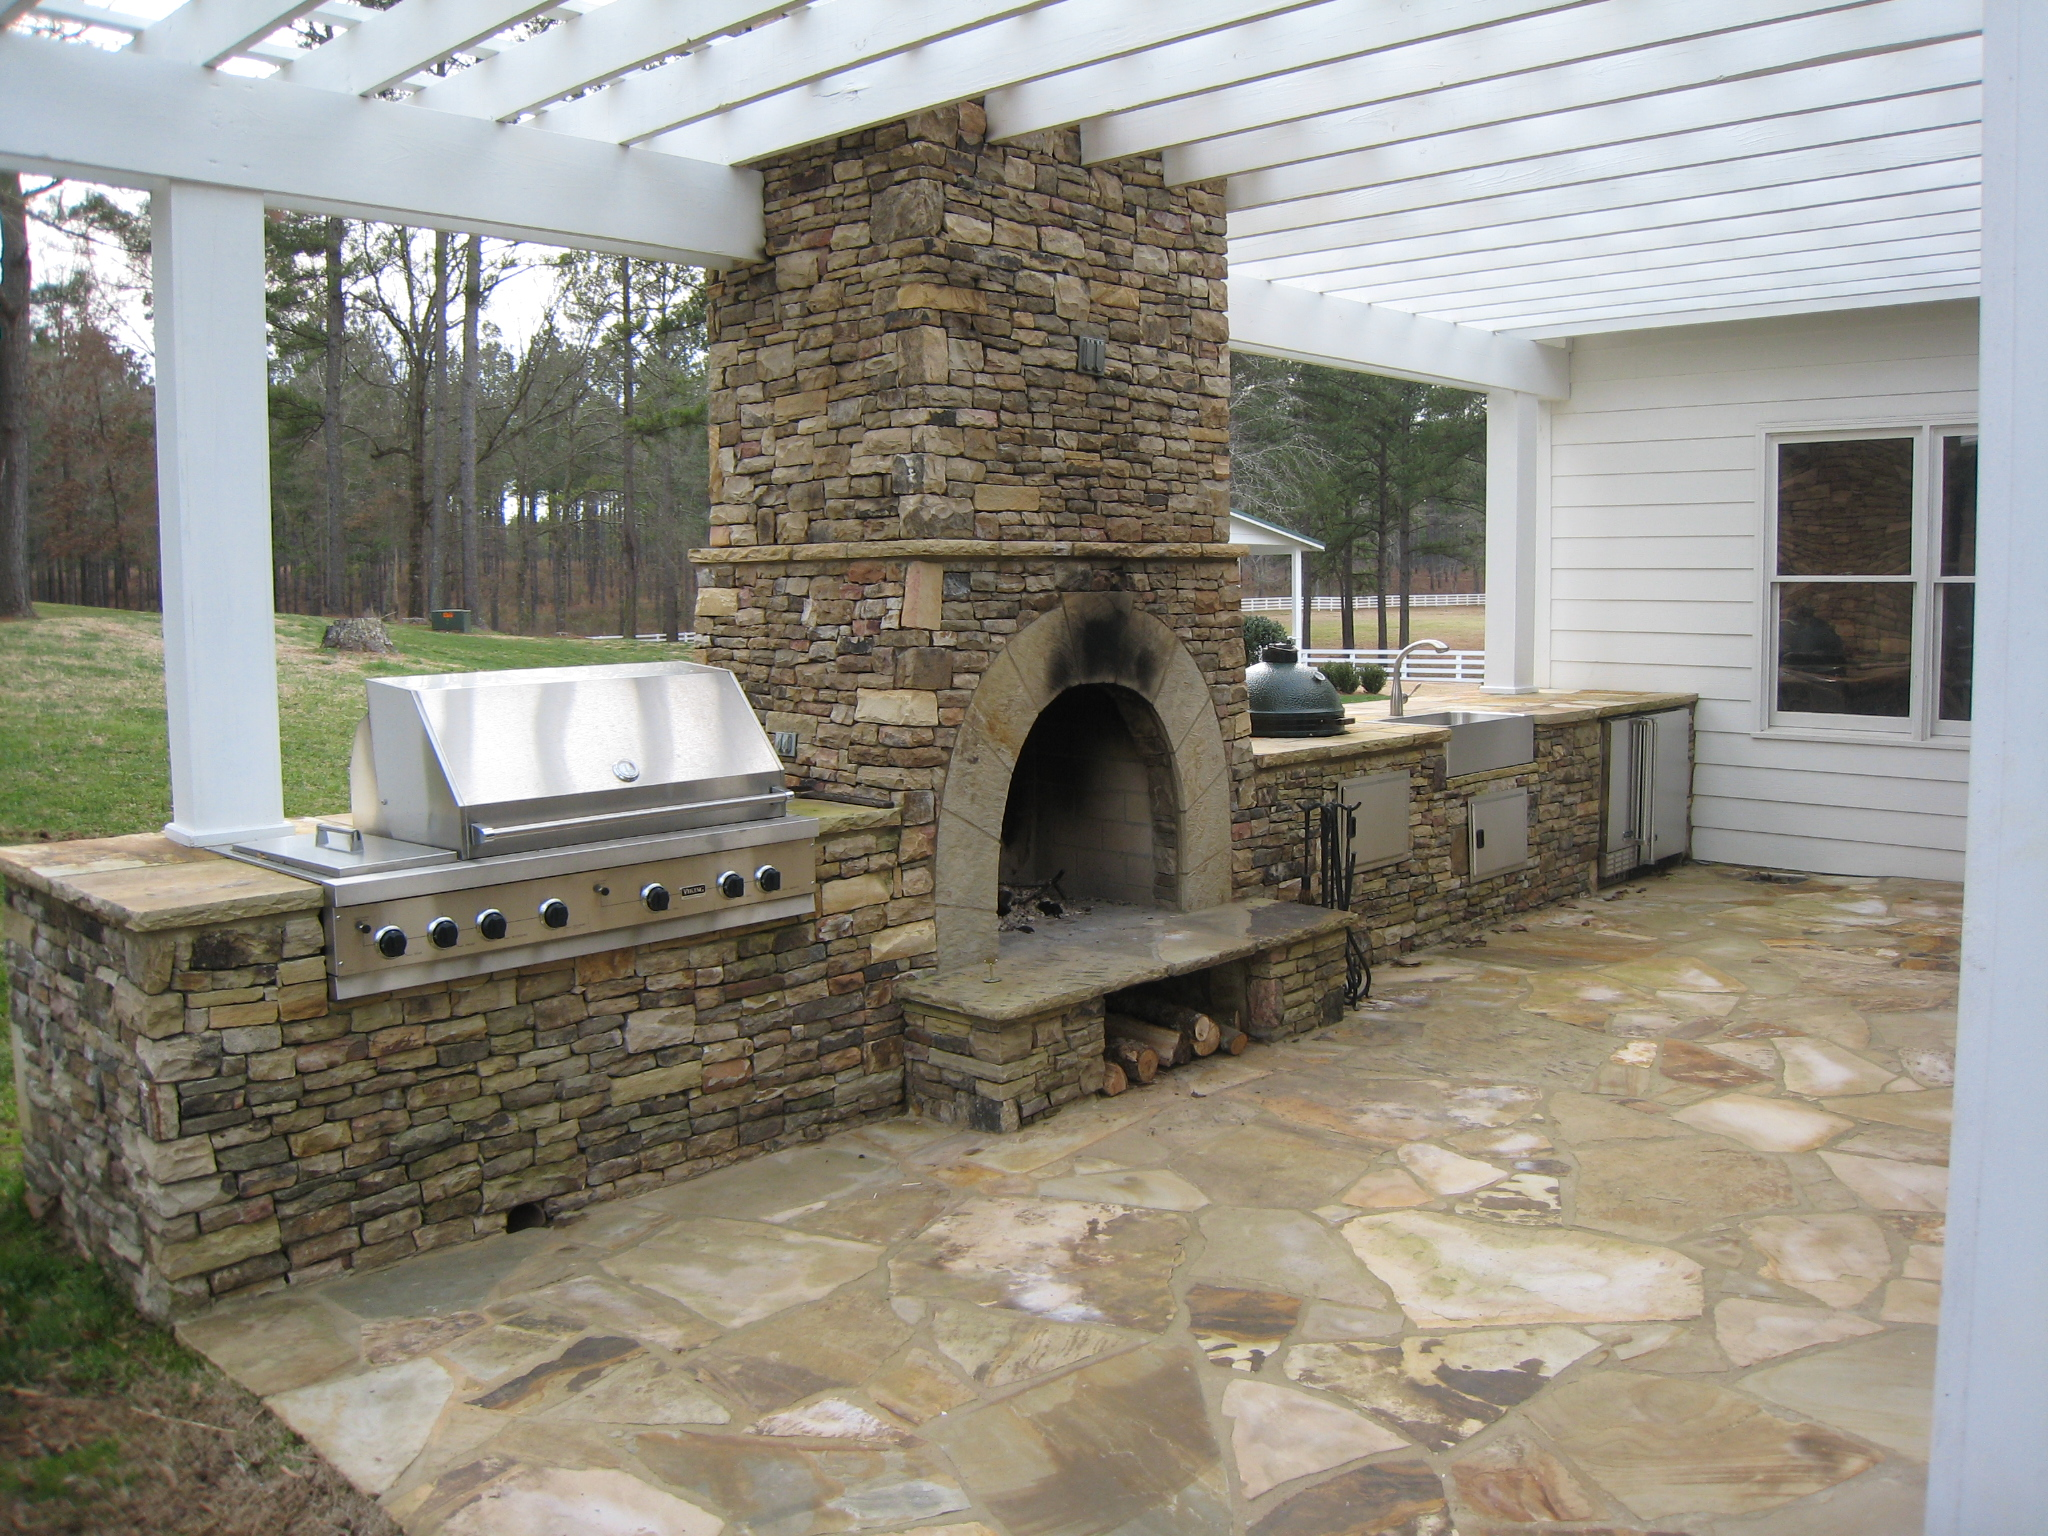 Outdoor Kitchens & Stone BBQ Design | Davel Construction on Outdoor Kitchen And Fireplace Ideas id=23332